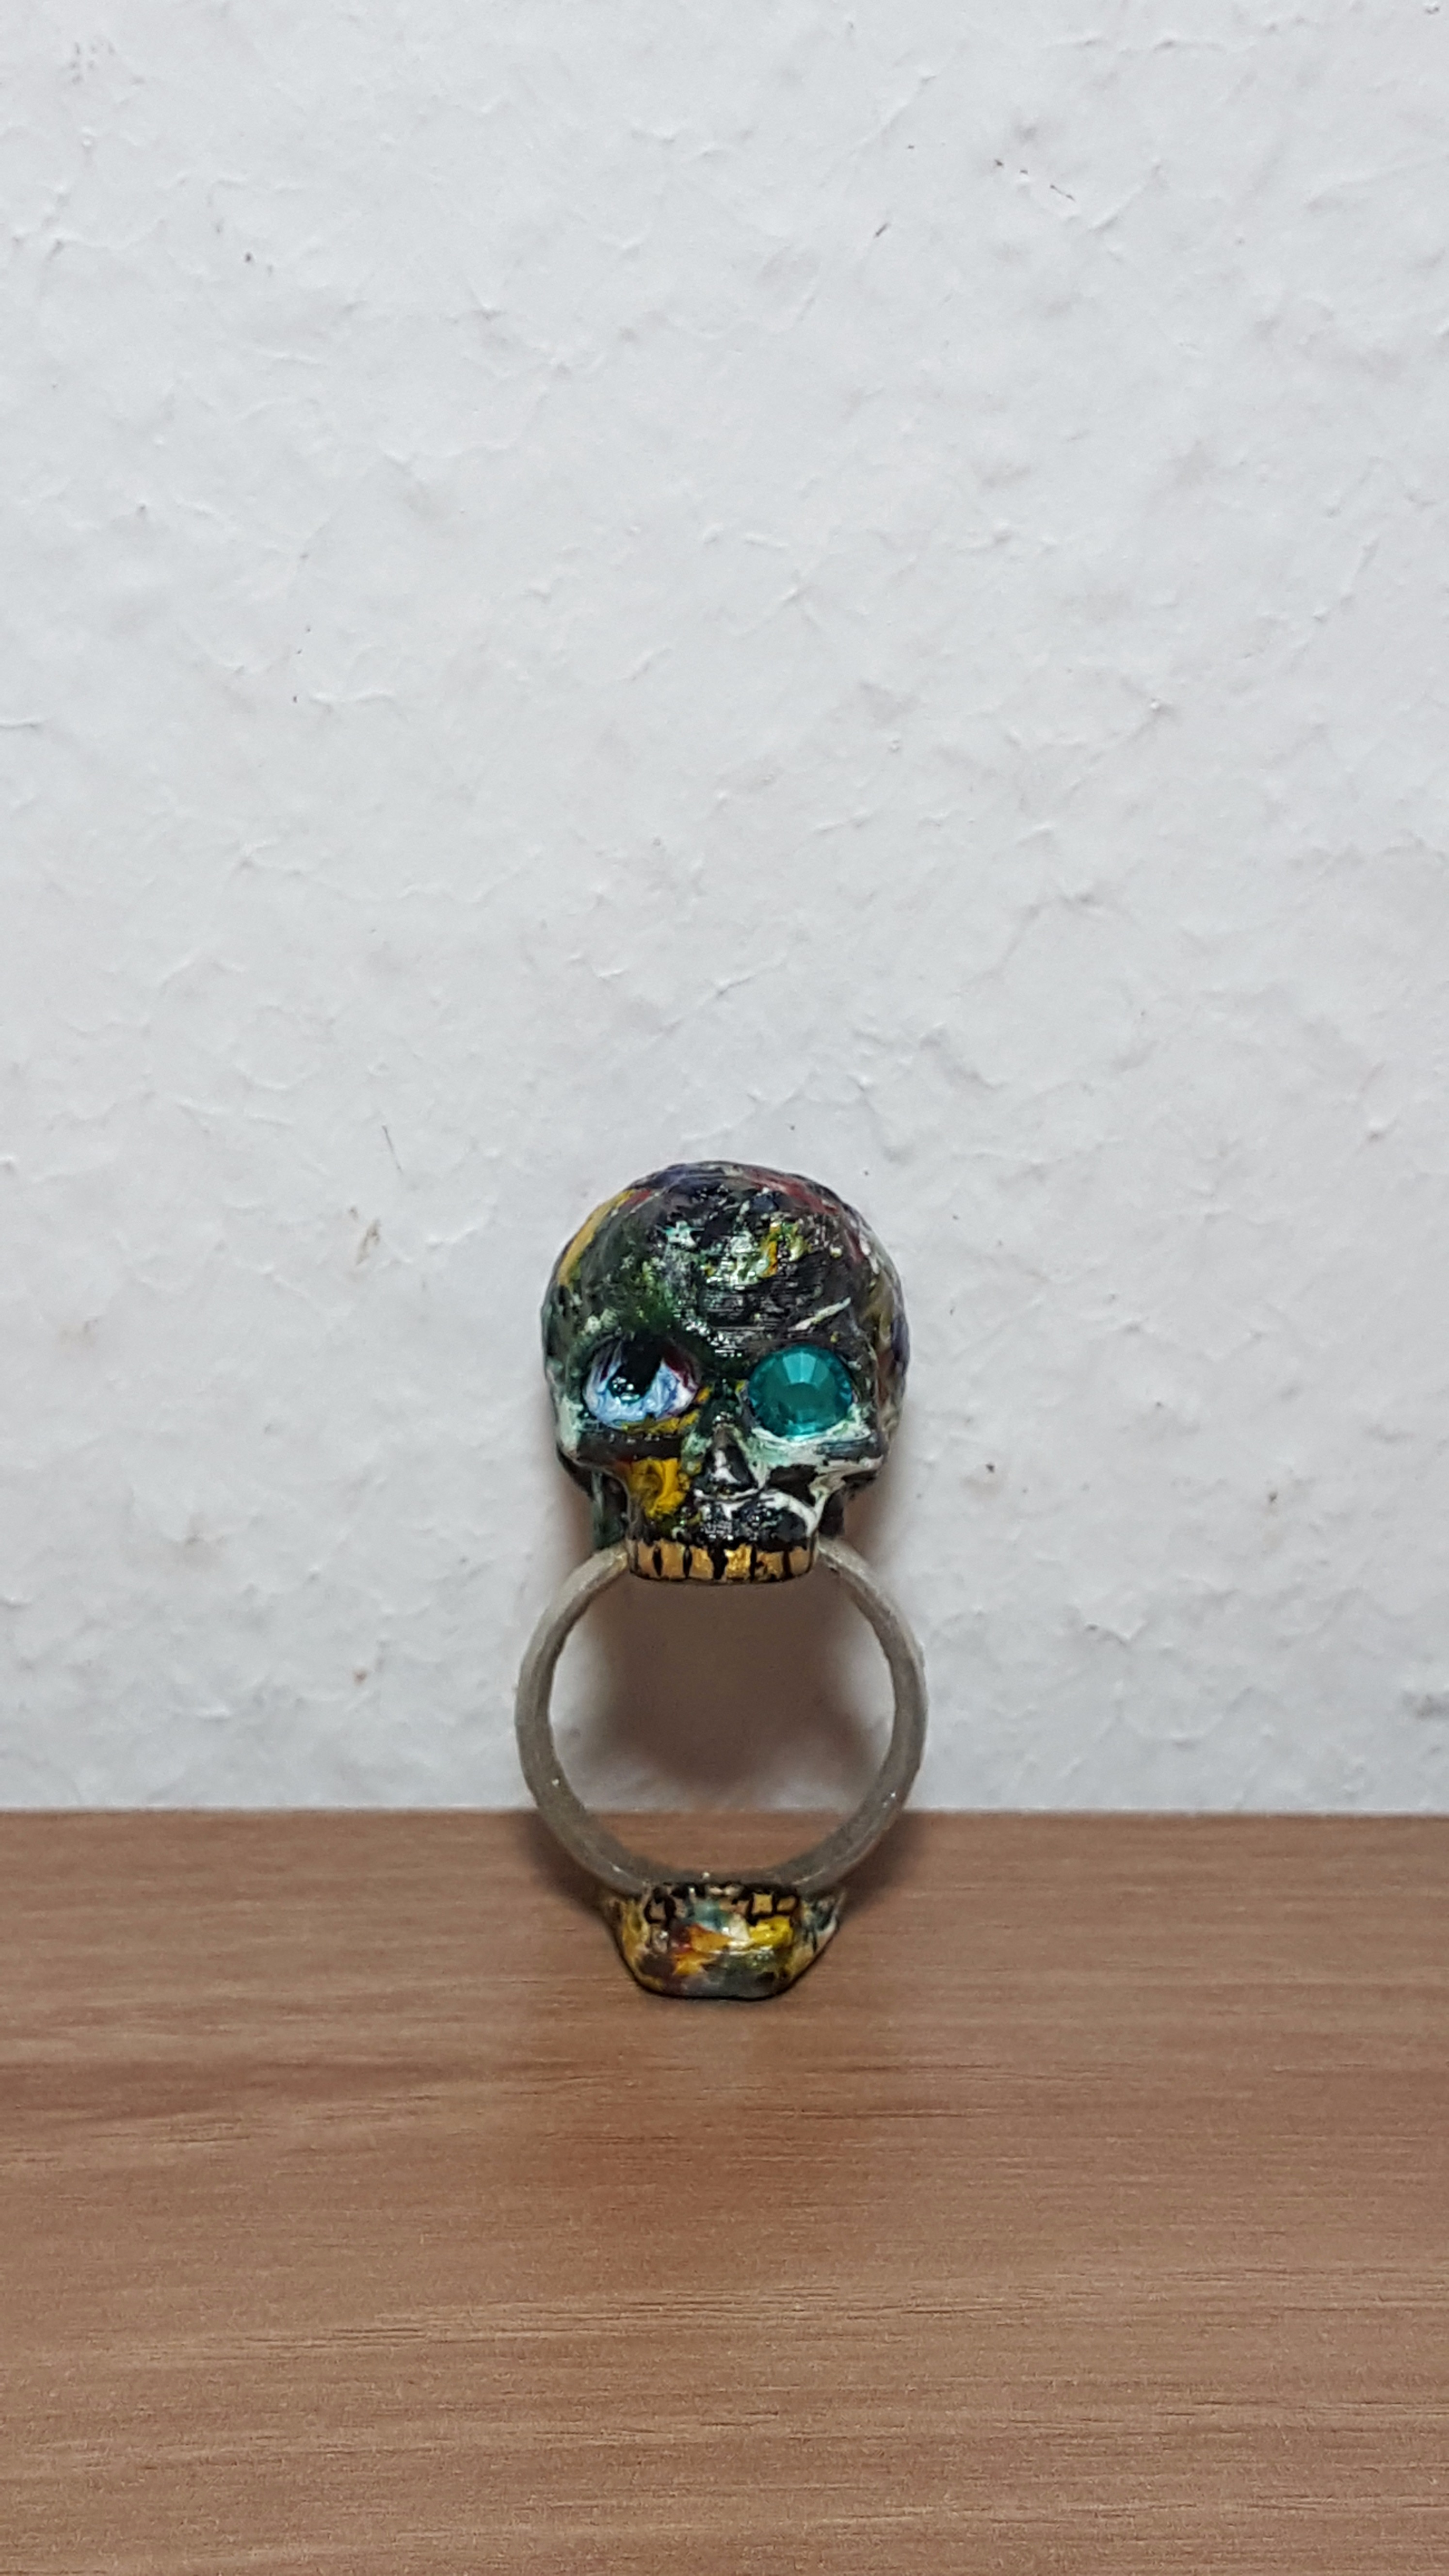 Picture of Skull Ring Project - Joo-hyun LEE